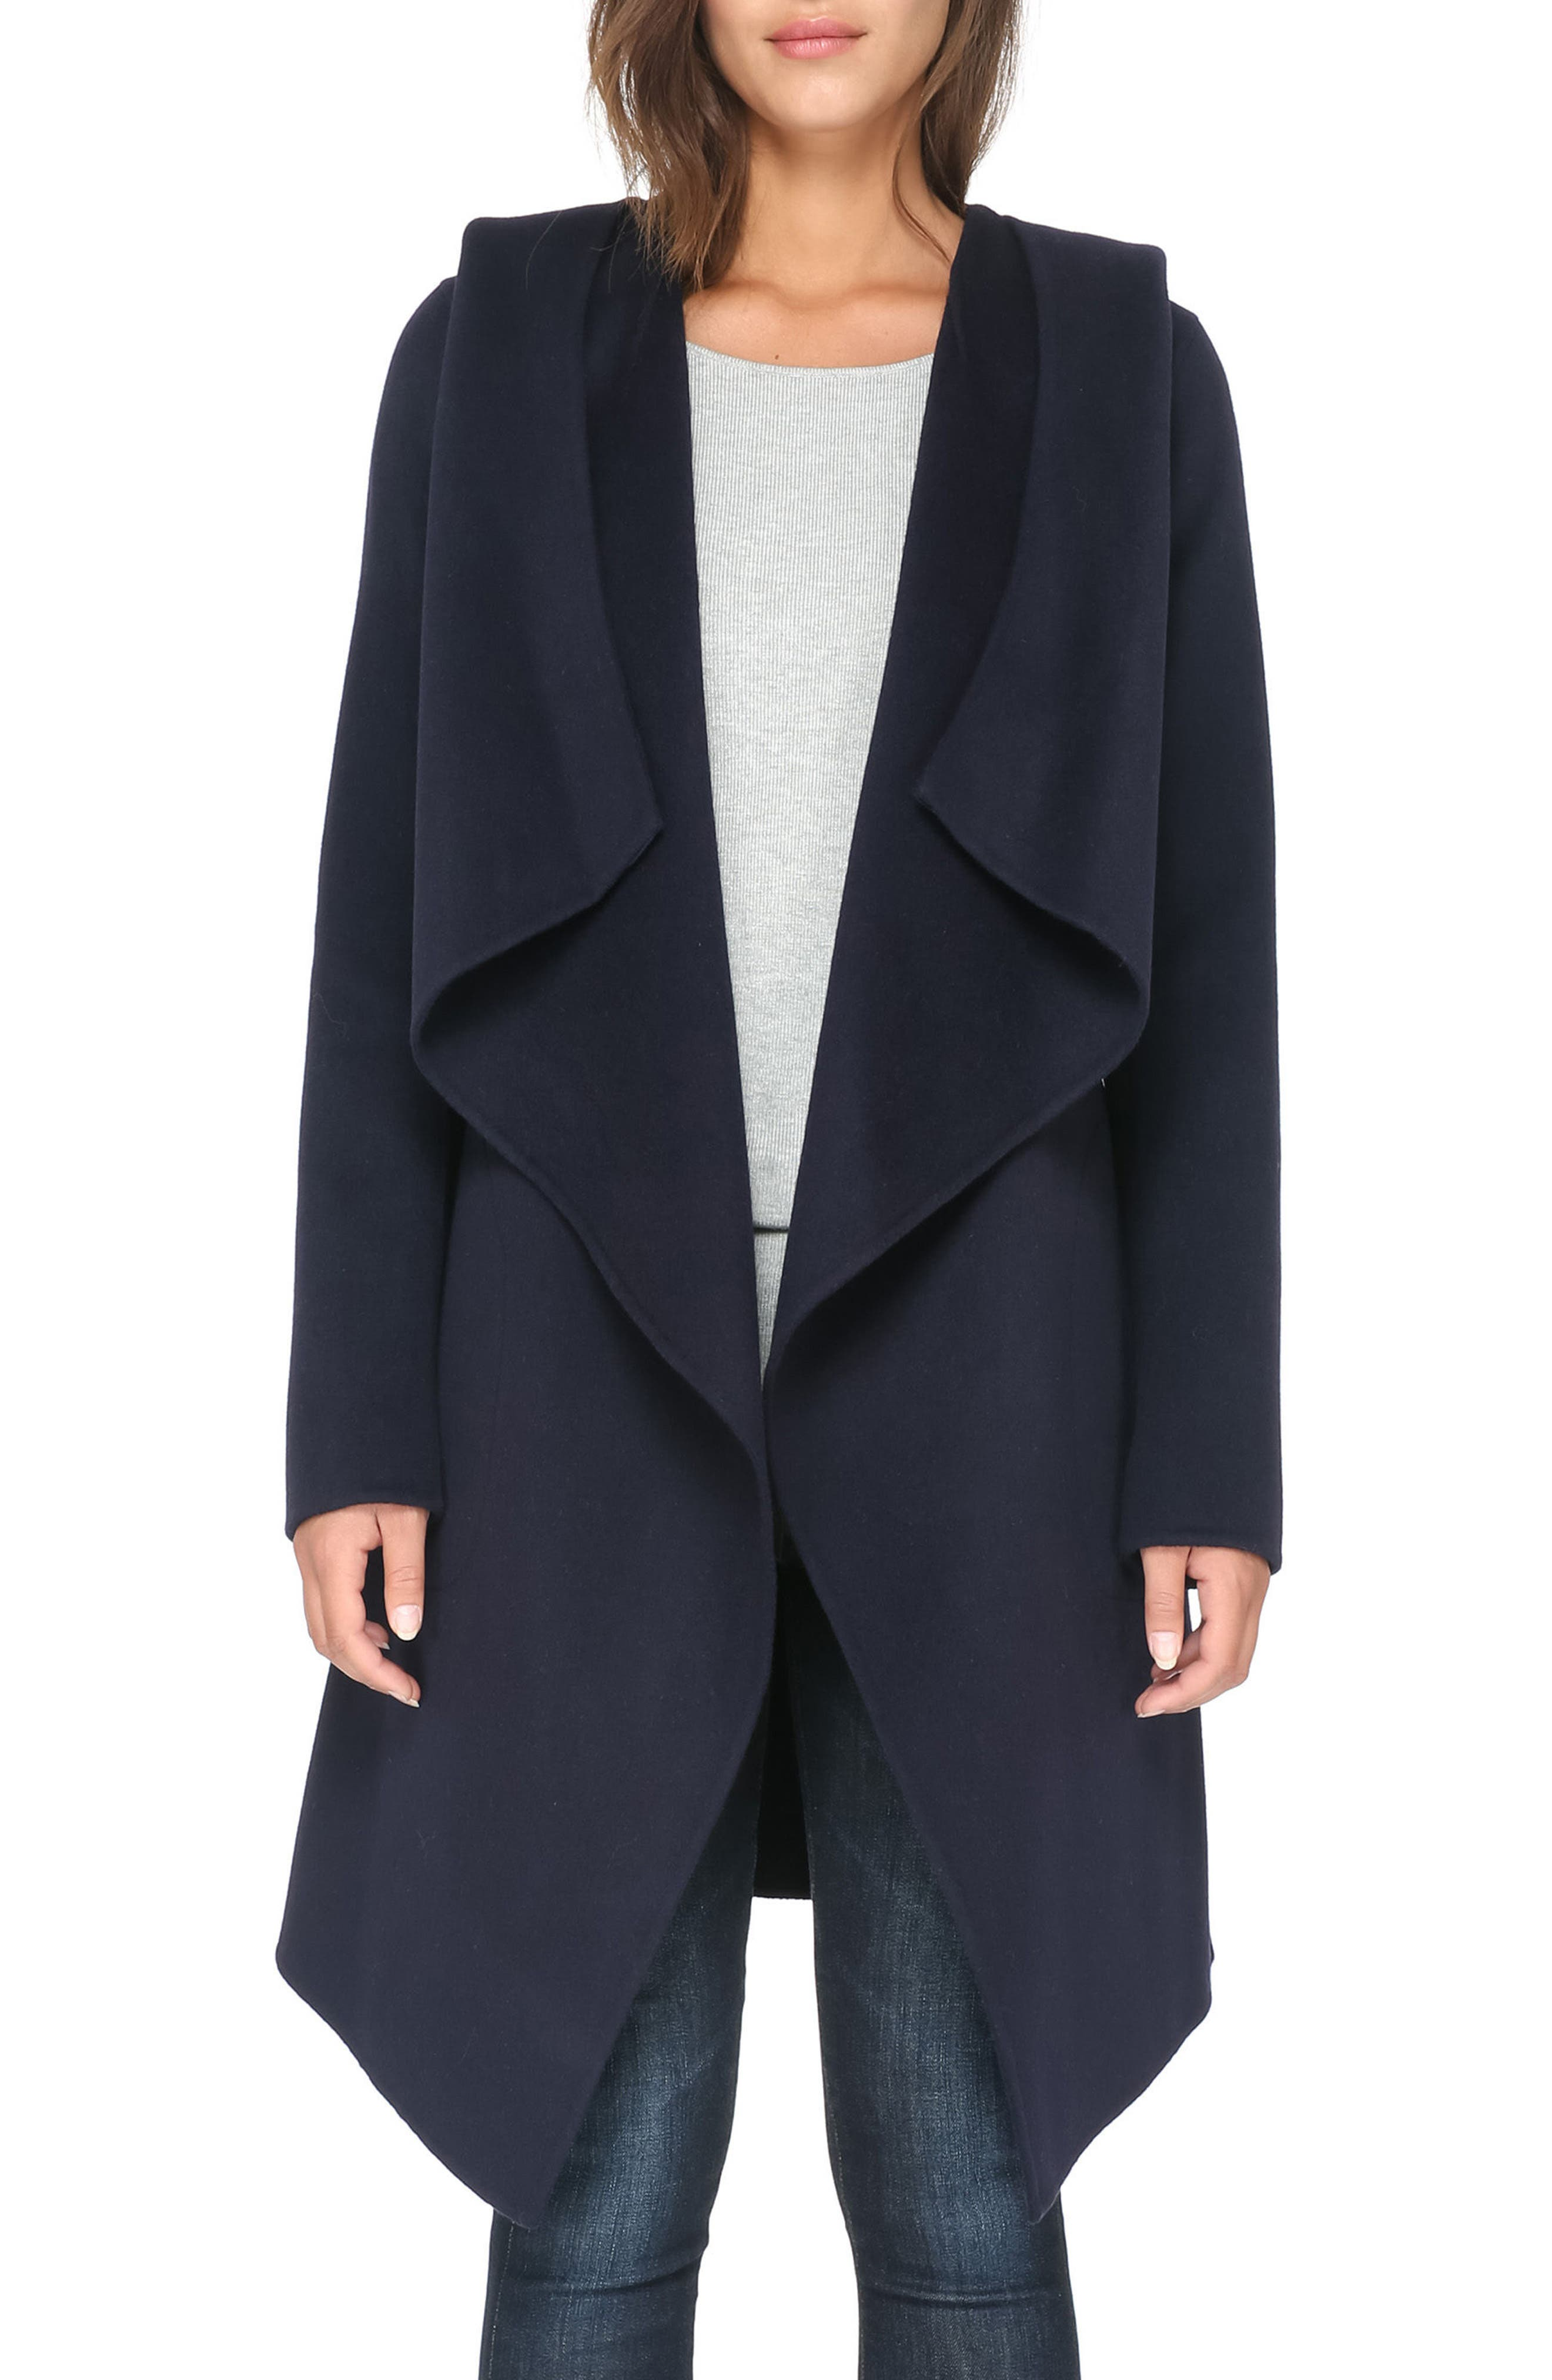 Alternate Image 1 Selected - Soia & Kyo Reversible Double Face Wool Blend Coat